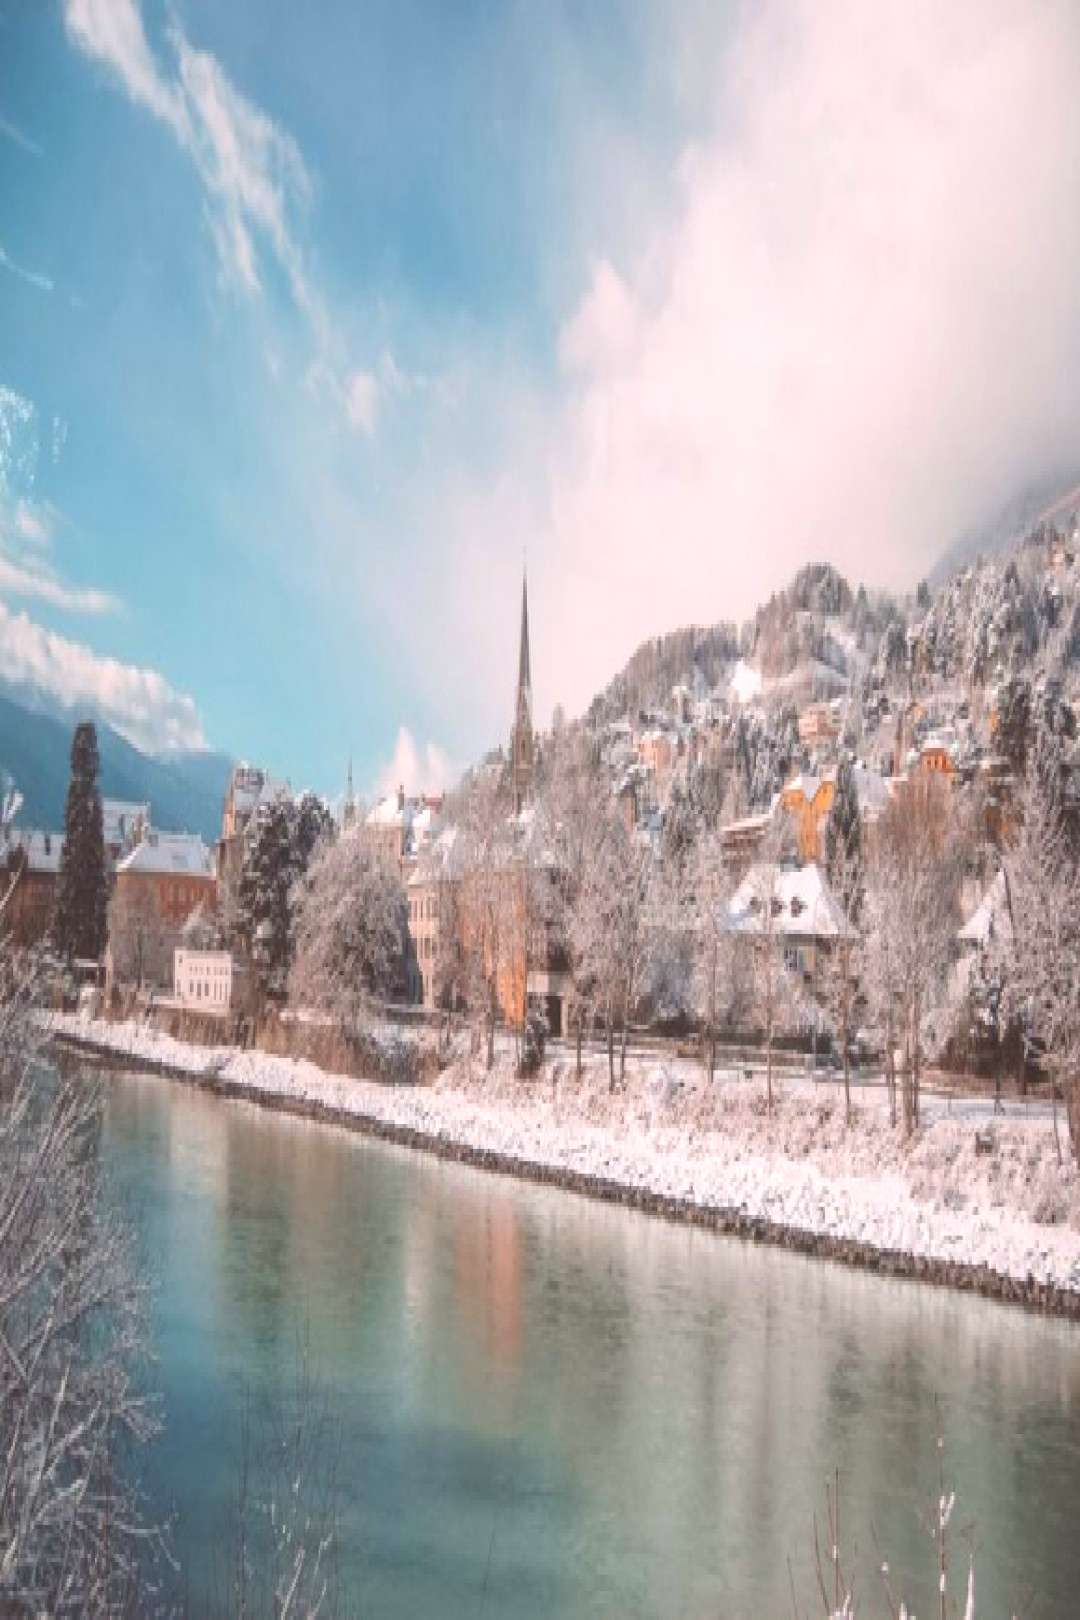 22 Photos That Will Make You Book a Trip to Austria. Upon moving to Germany last year I had never b